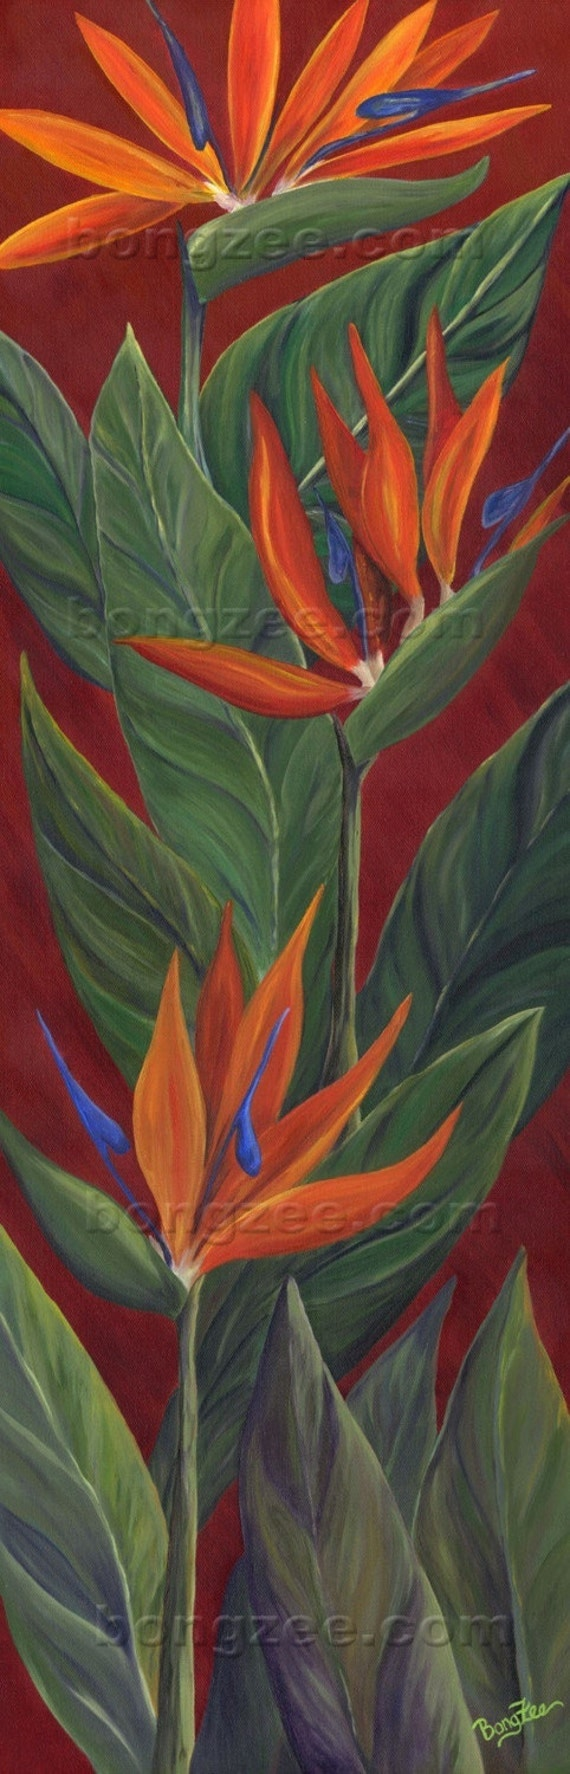 BIRD OF PARADISE Large 36x12 Original Oil Painting Art Artwork